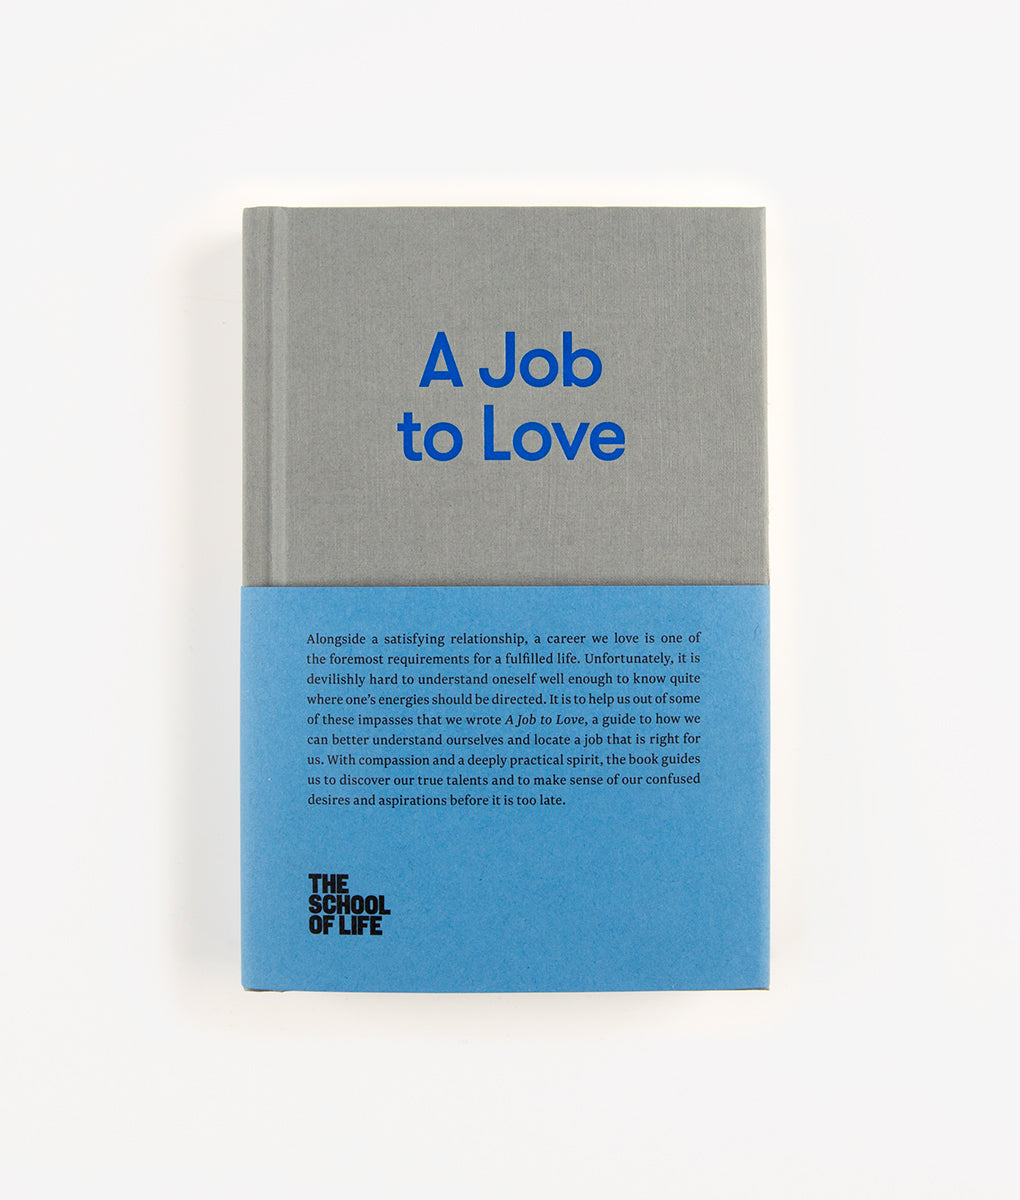 A-Job-to-Love-Book-03